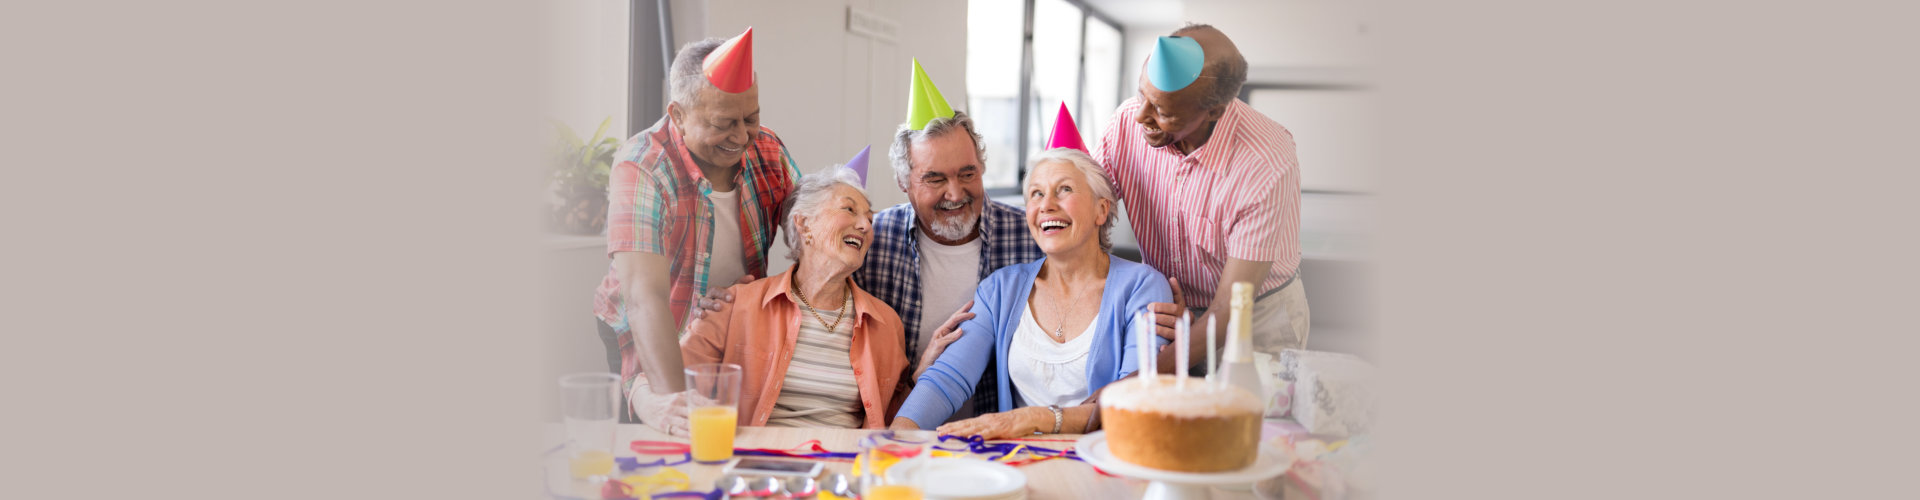 excited senior woman during birthday party in nursing home